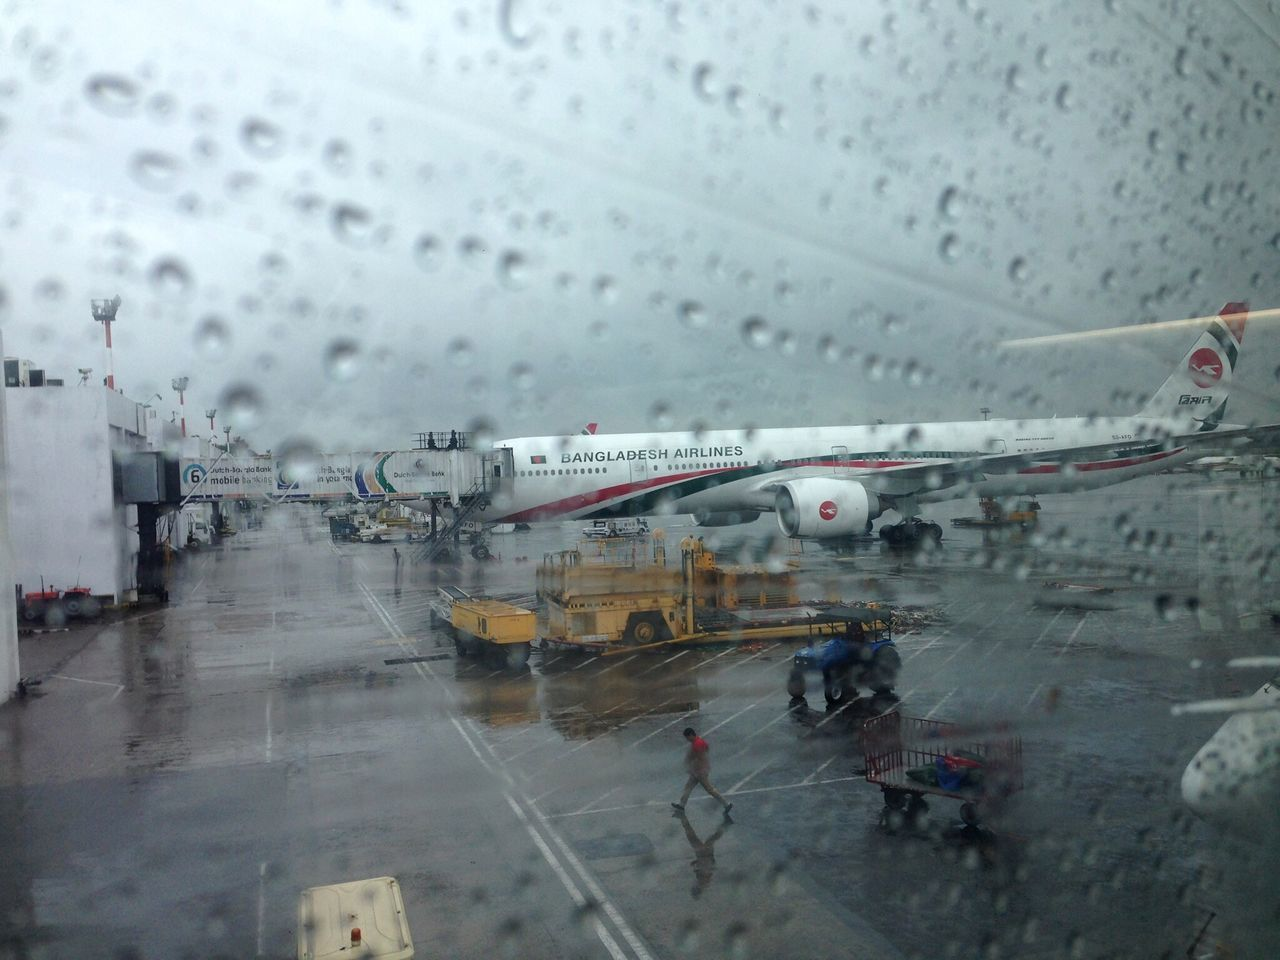 rain, wet, weather, transportation, rainy season, drop, window, raindrop, mode of transport, travel, airplane, public transportation, water, day, airport, airport runway, indoors, large group of people, snowing, cold temperature, sky, people